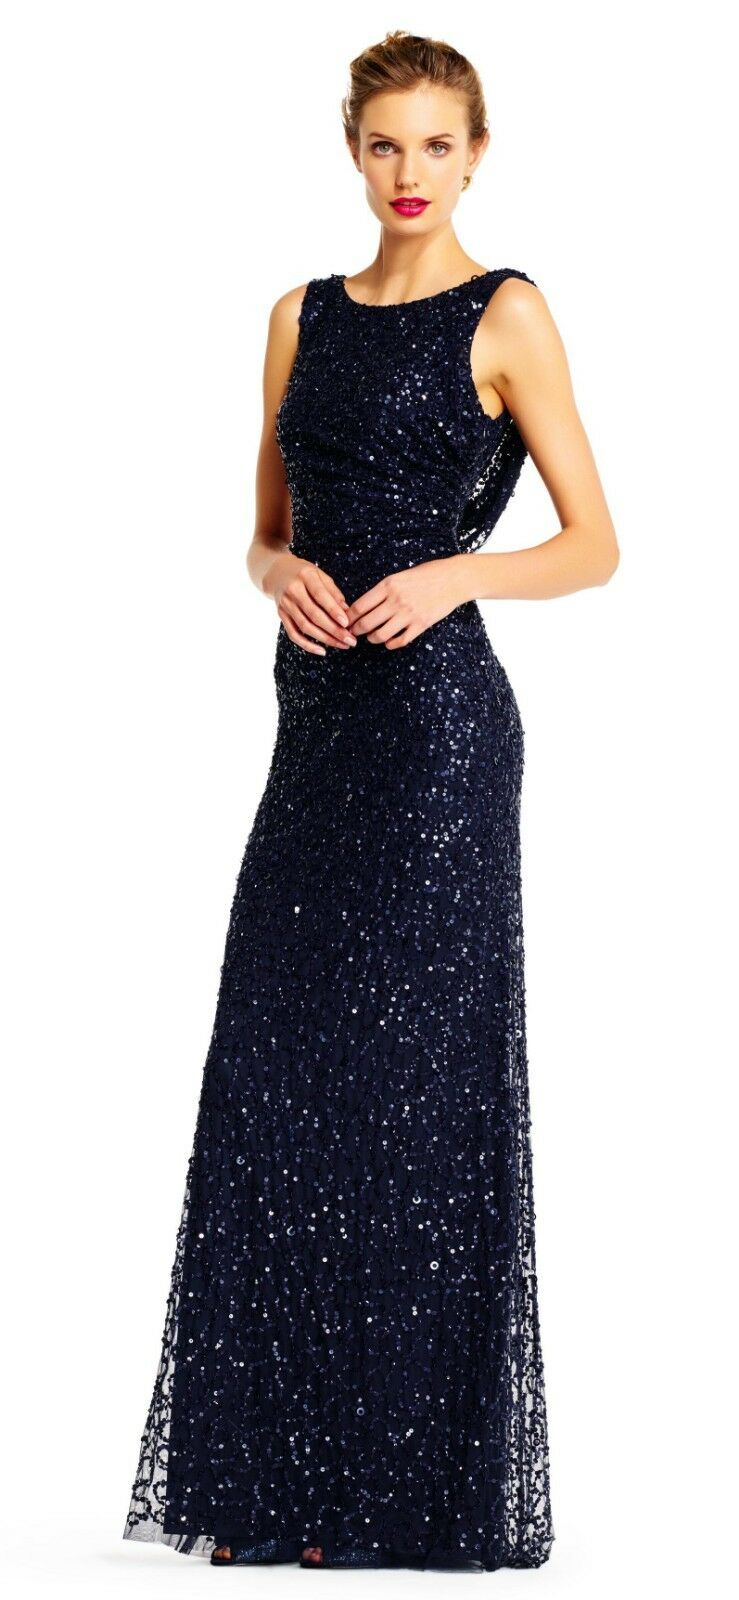 Adrianna Papell Sleeveless Sequin Beaded Gown Größe 4  D494 MSRP